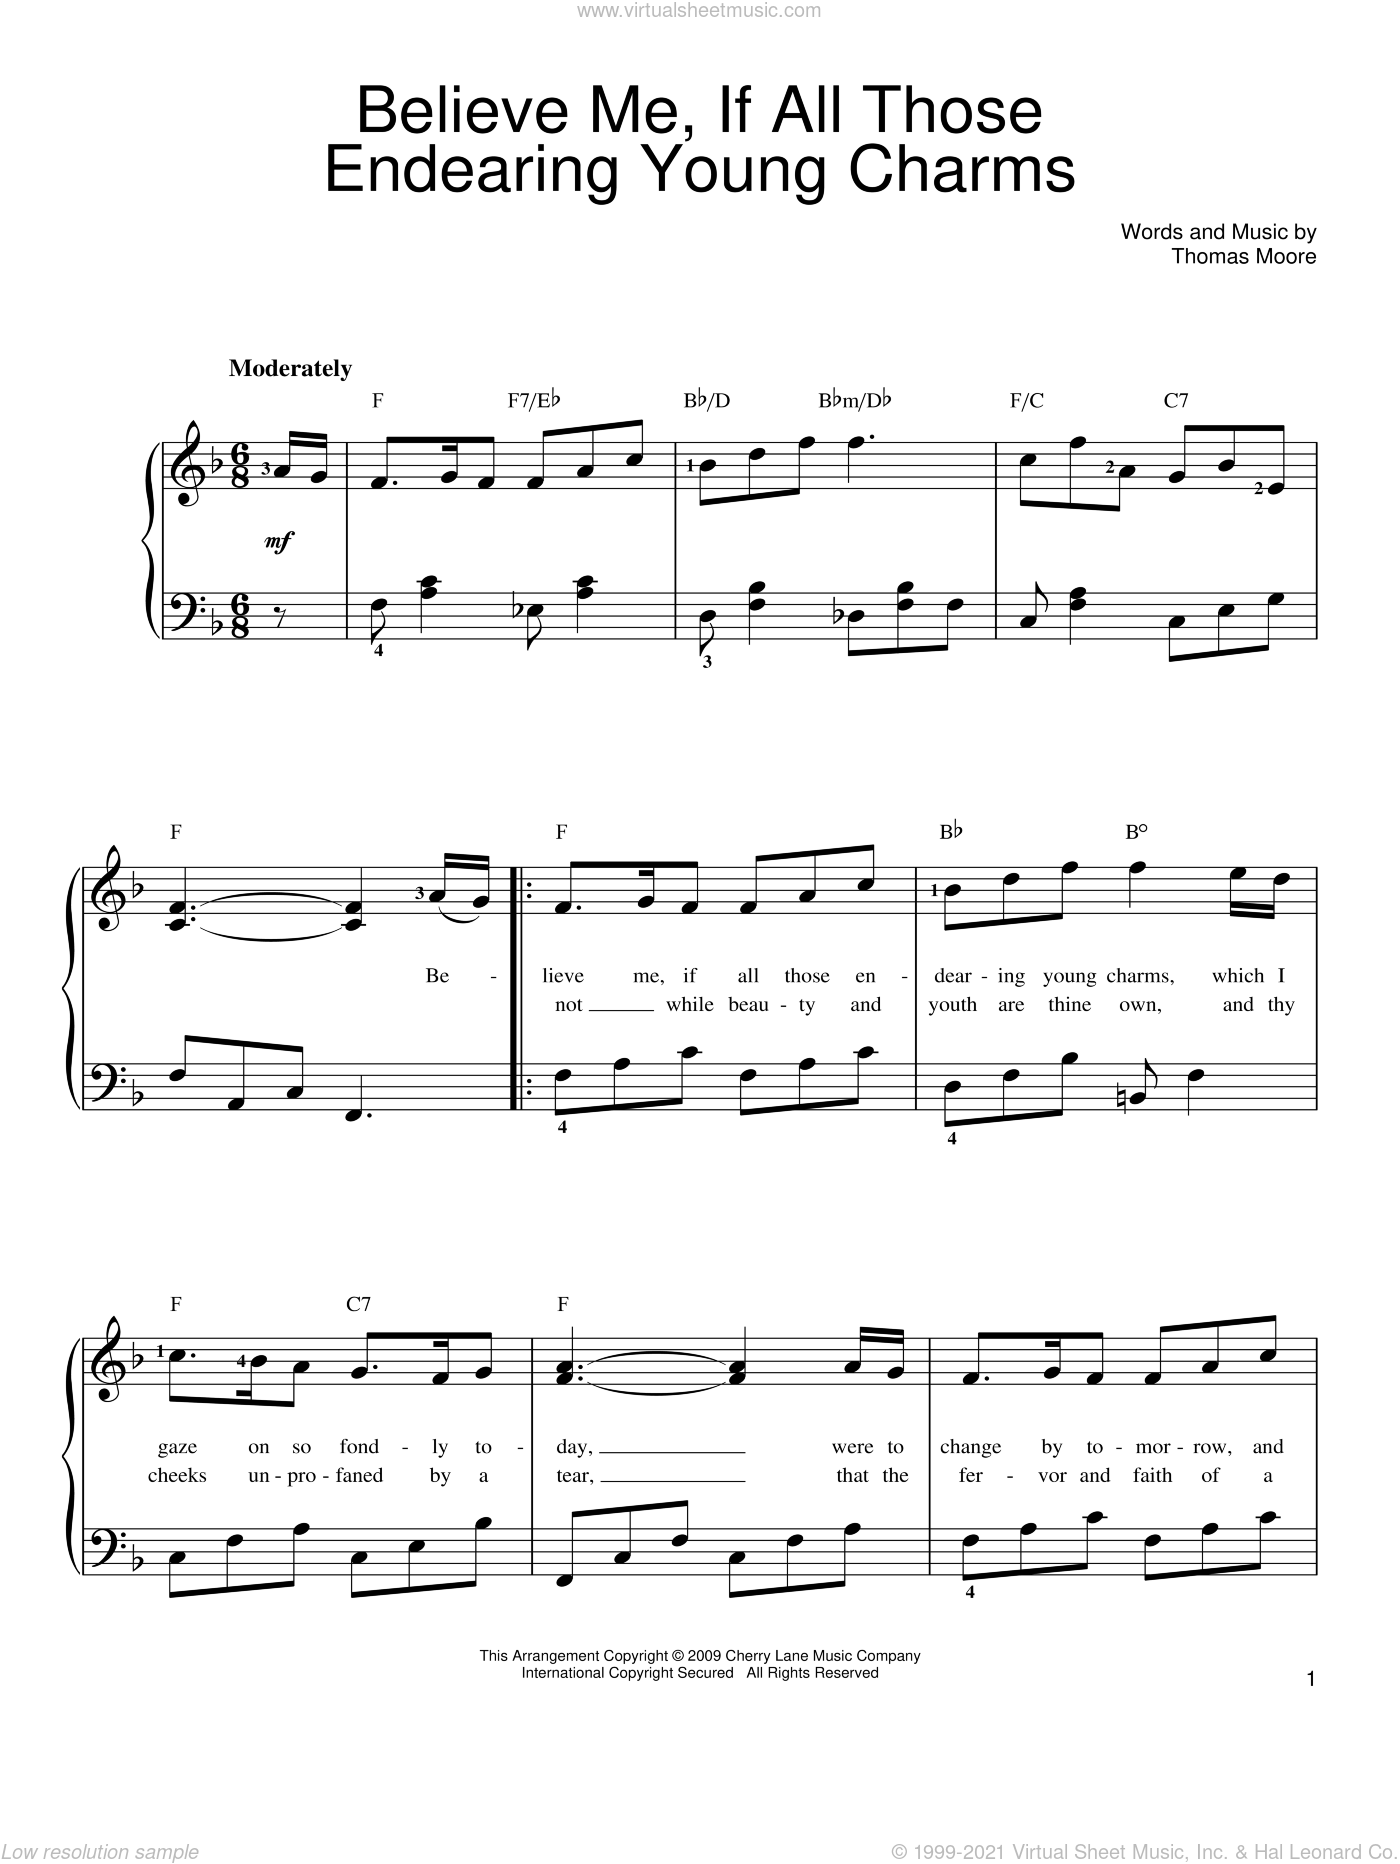 Believe Me, If All Those Endearing Young Charms sheet music for piano solo by Thomas Moore. Score Image Preview.